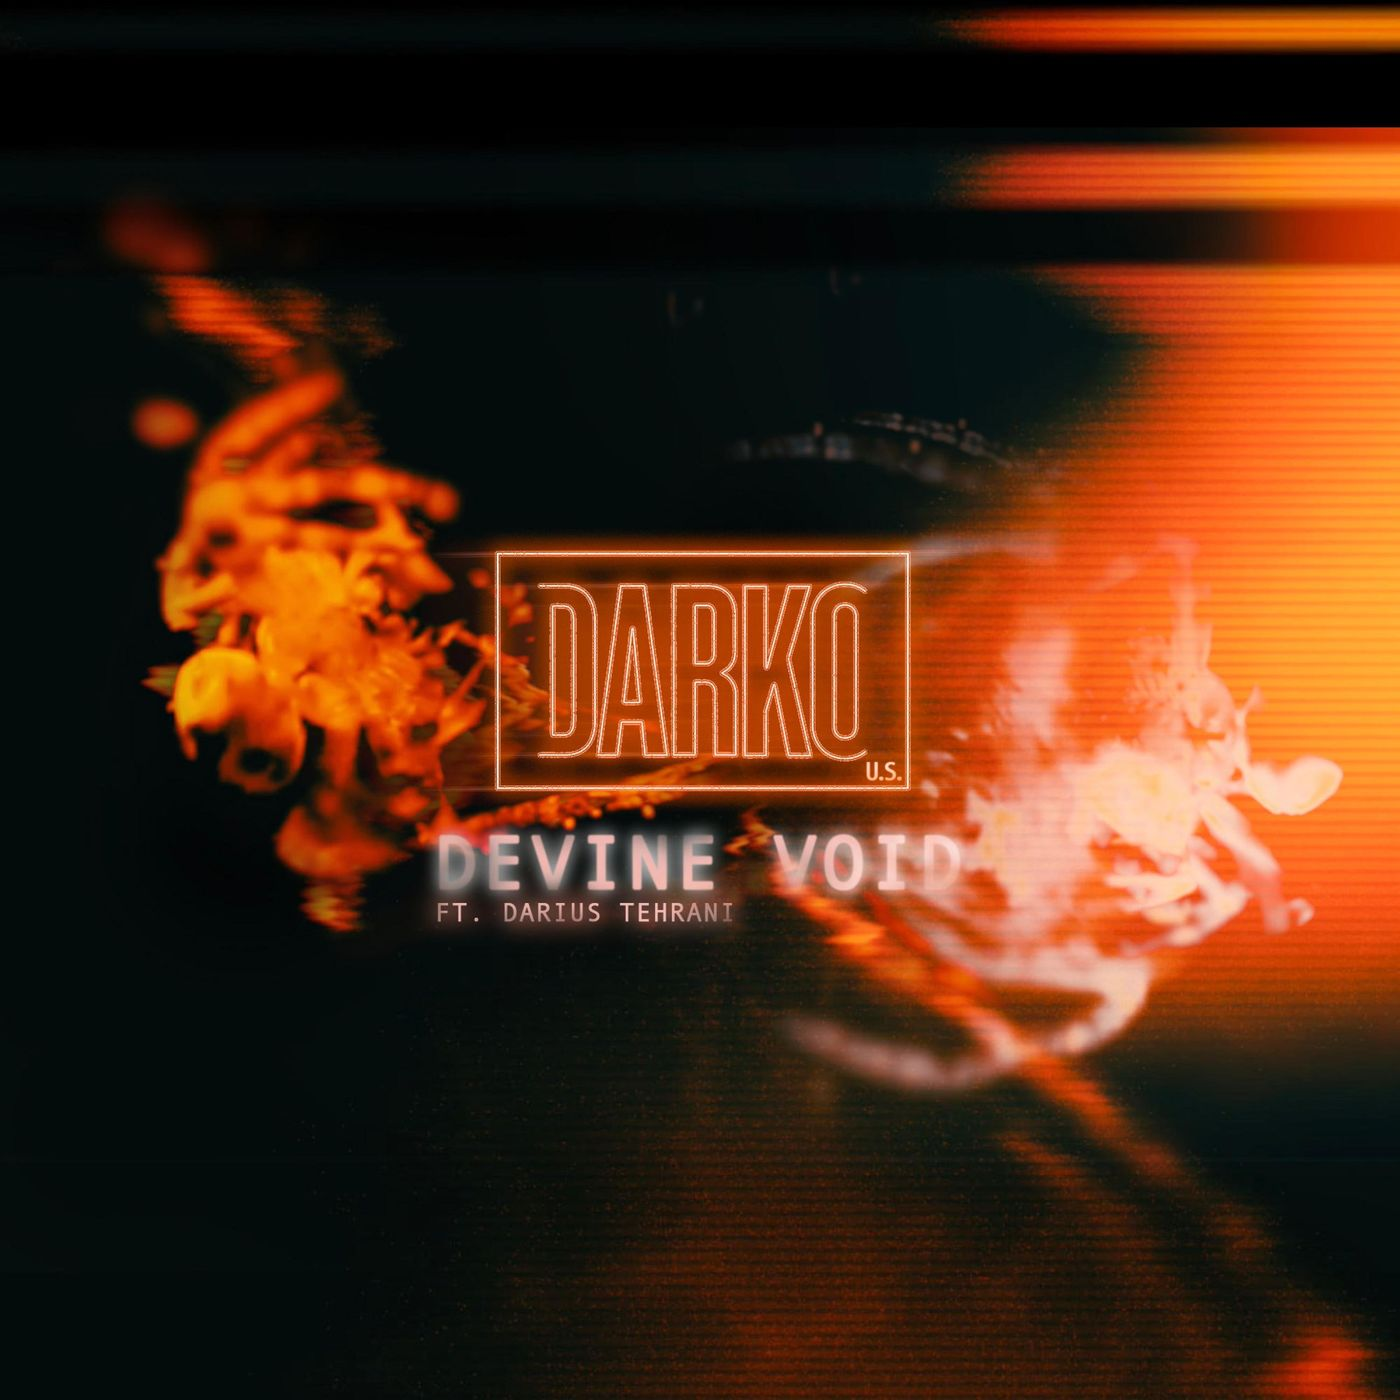 Darko US - Devine Void [single] (2020)